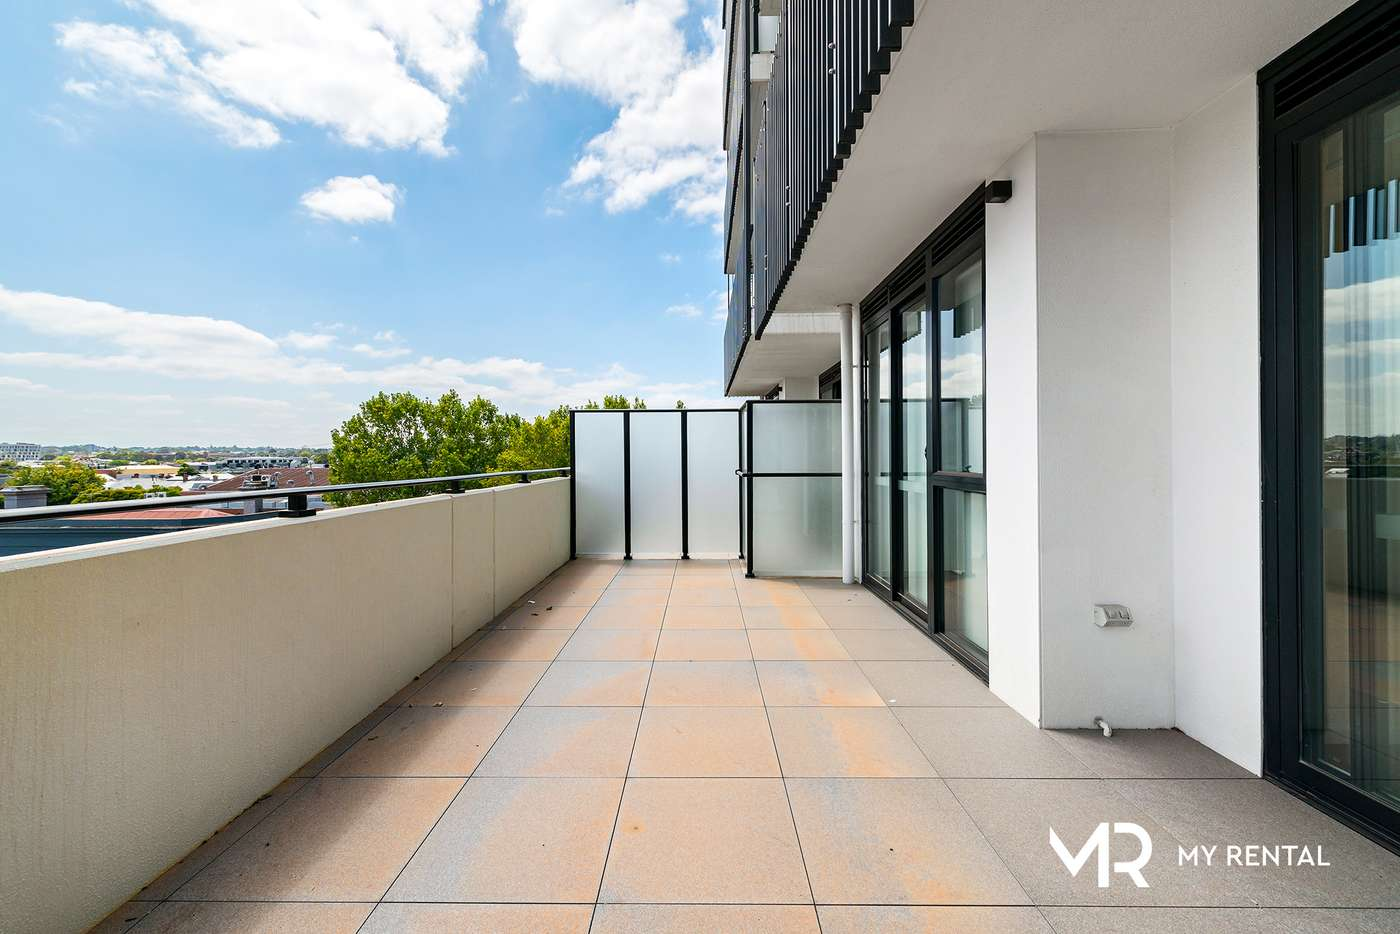 Sixth view of Homely apartment listing, 302/306-312 Swan Street, Richmond VIC 3121